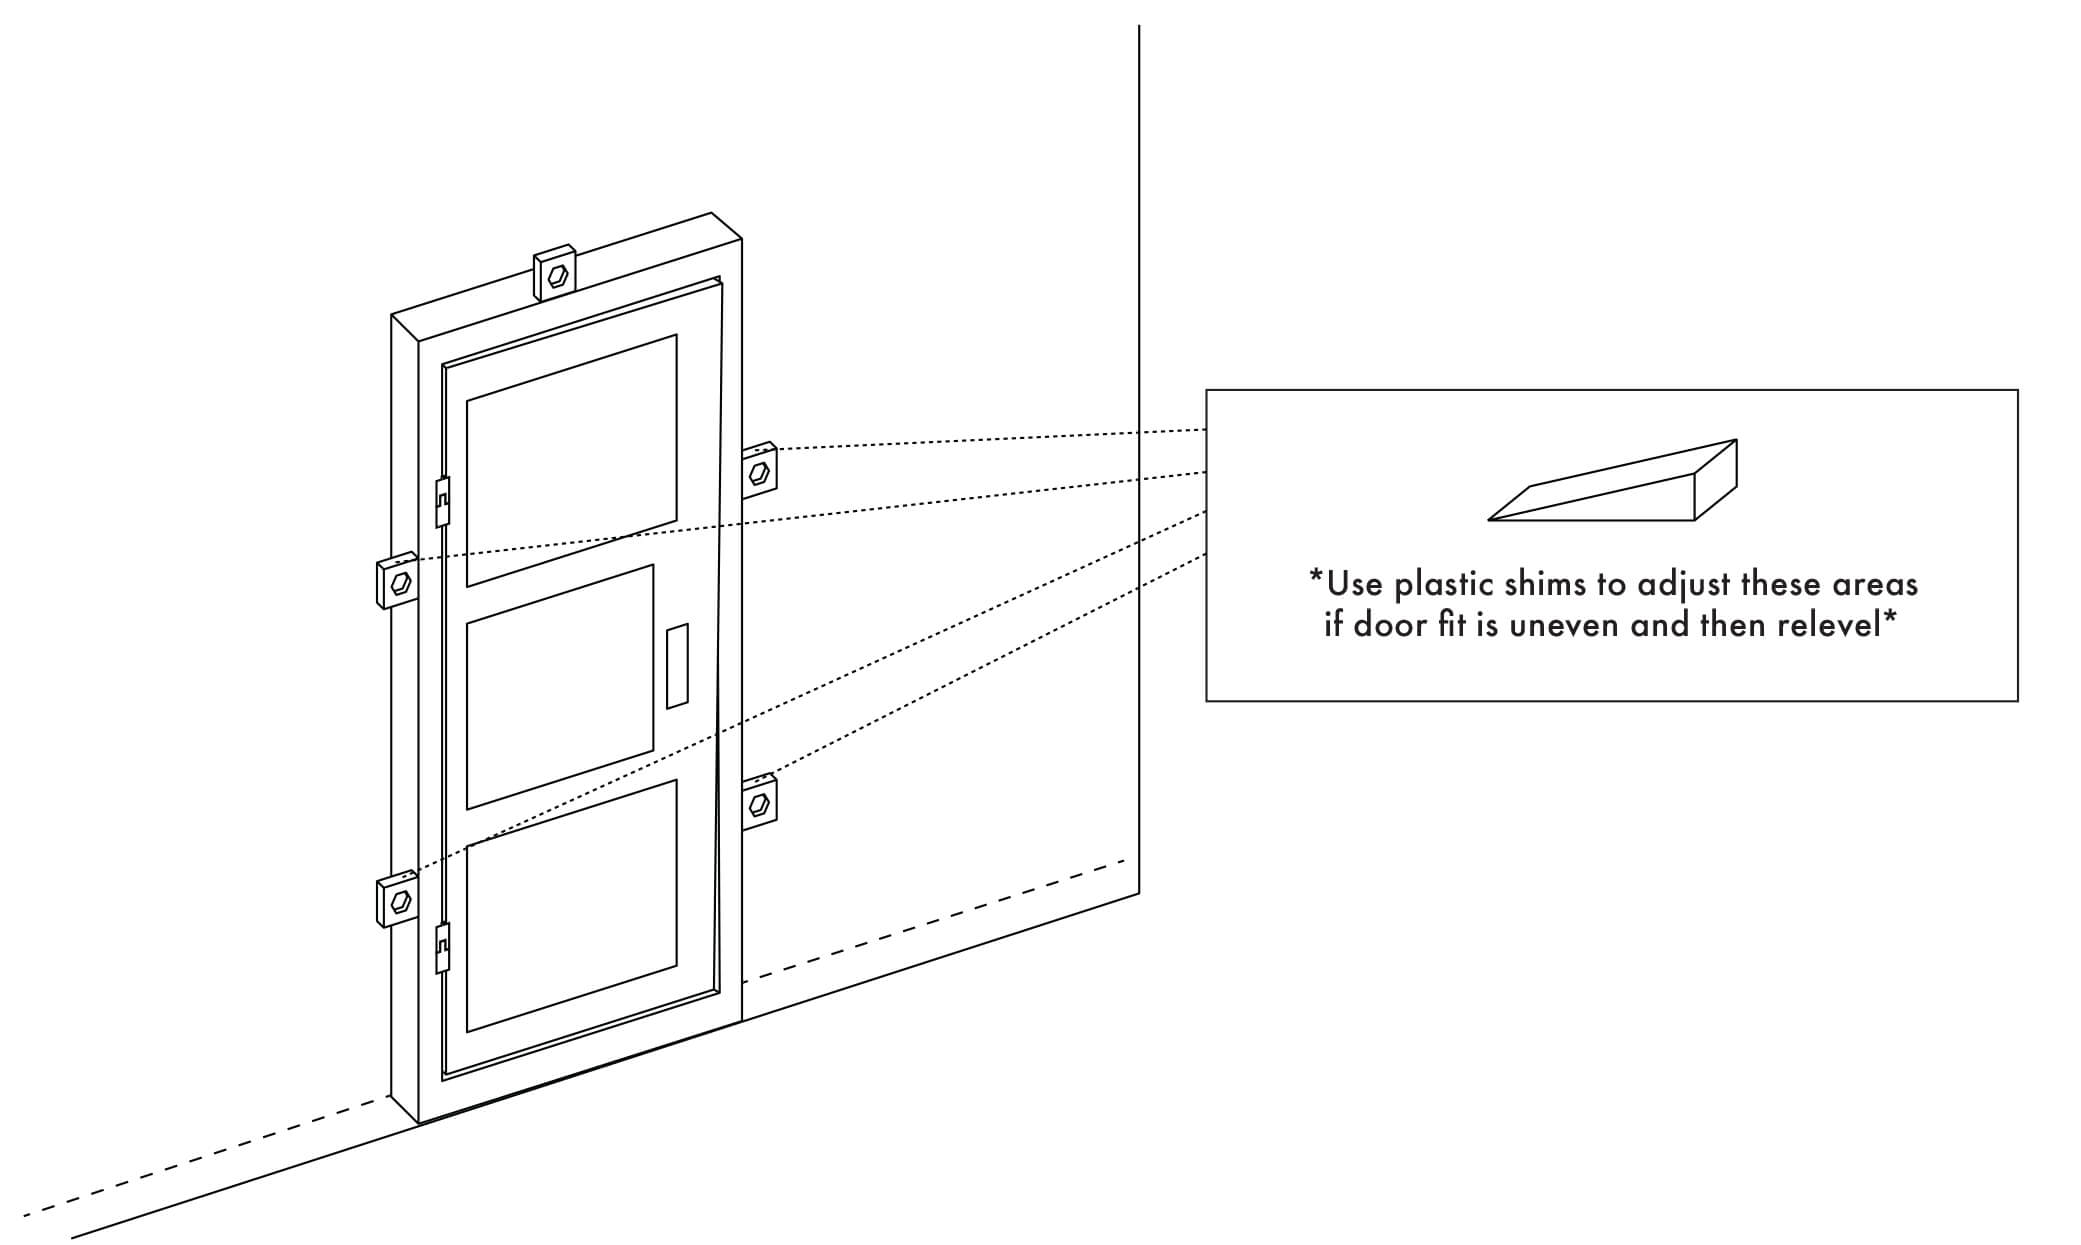 Use plastic Shims to adjust these areas if door fit is uneven